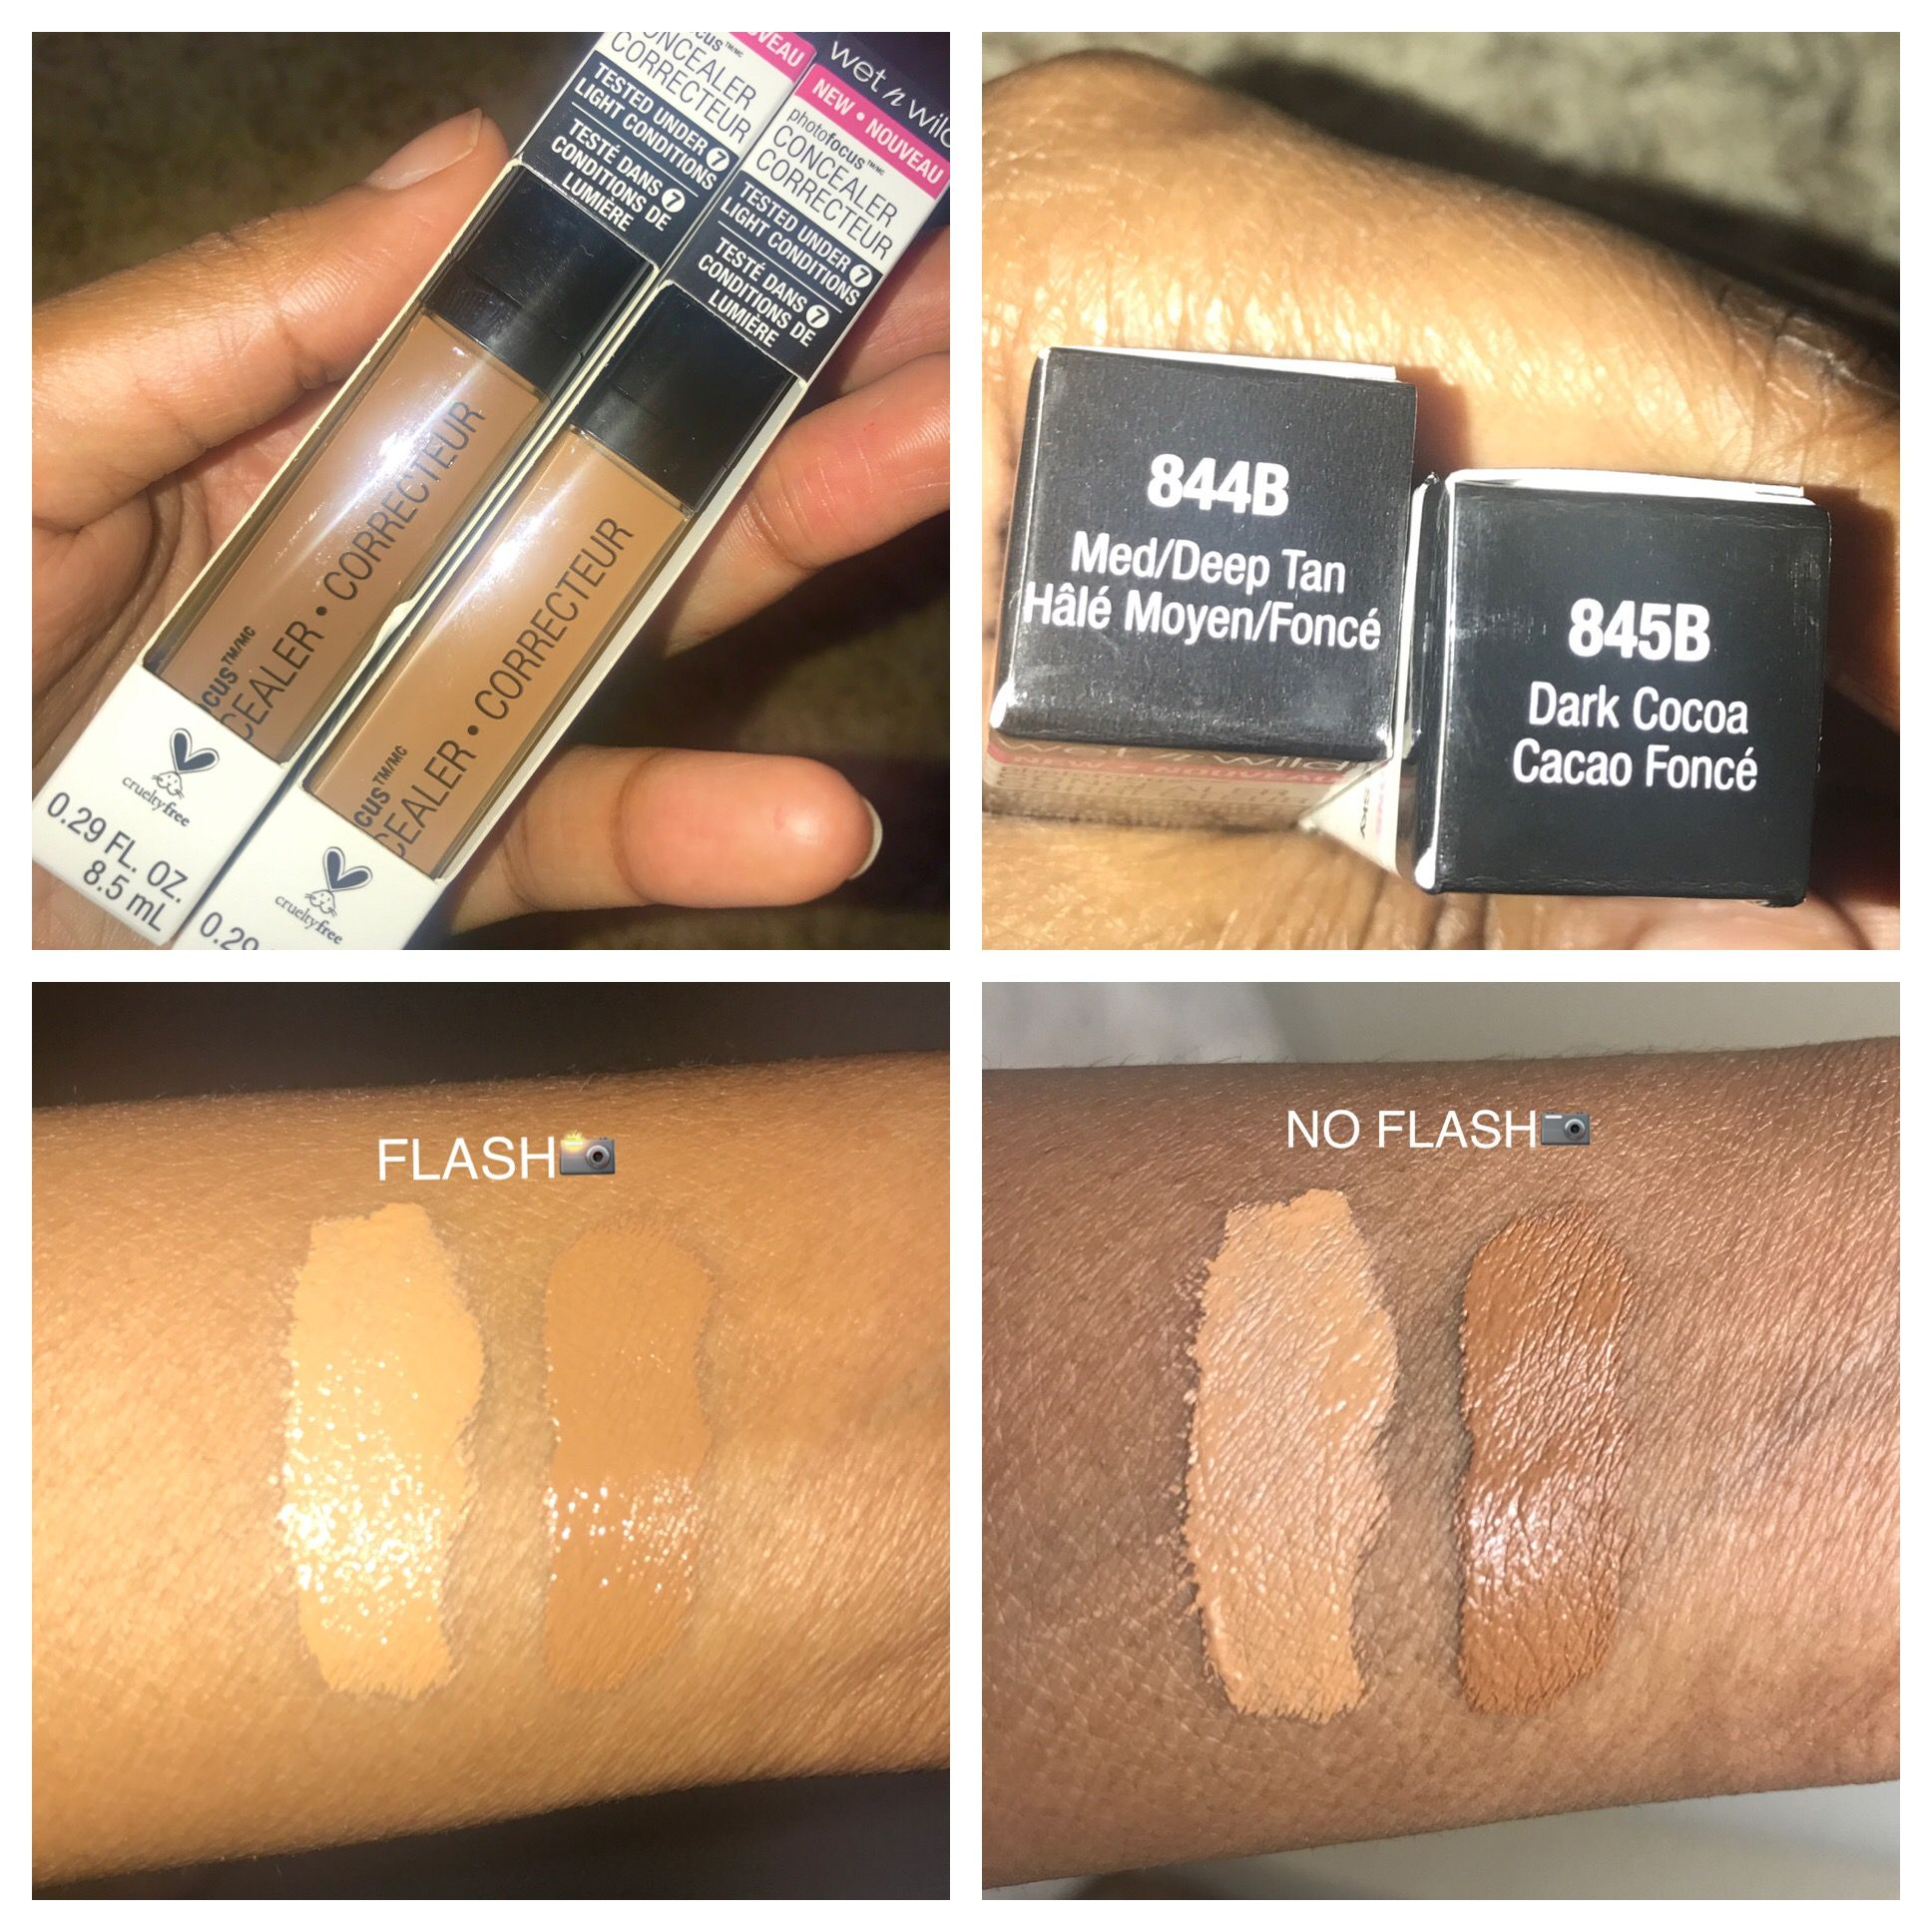 Just Picked Up The Wet N Wild Photofocus Concealer In The